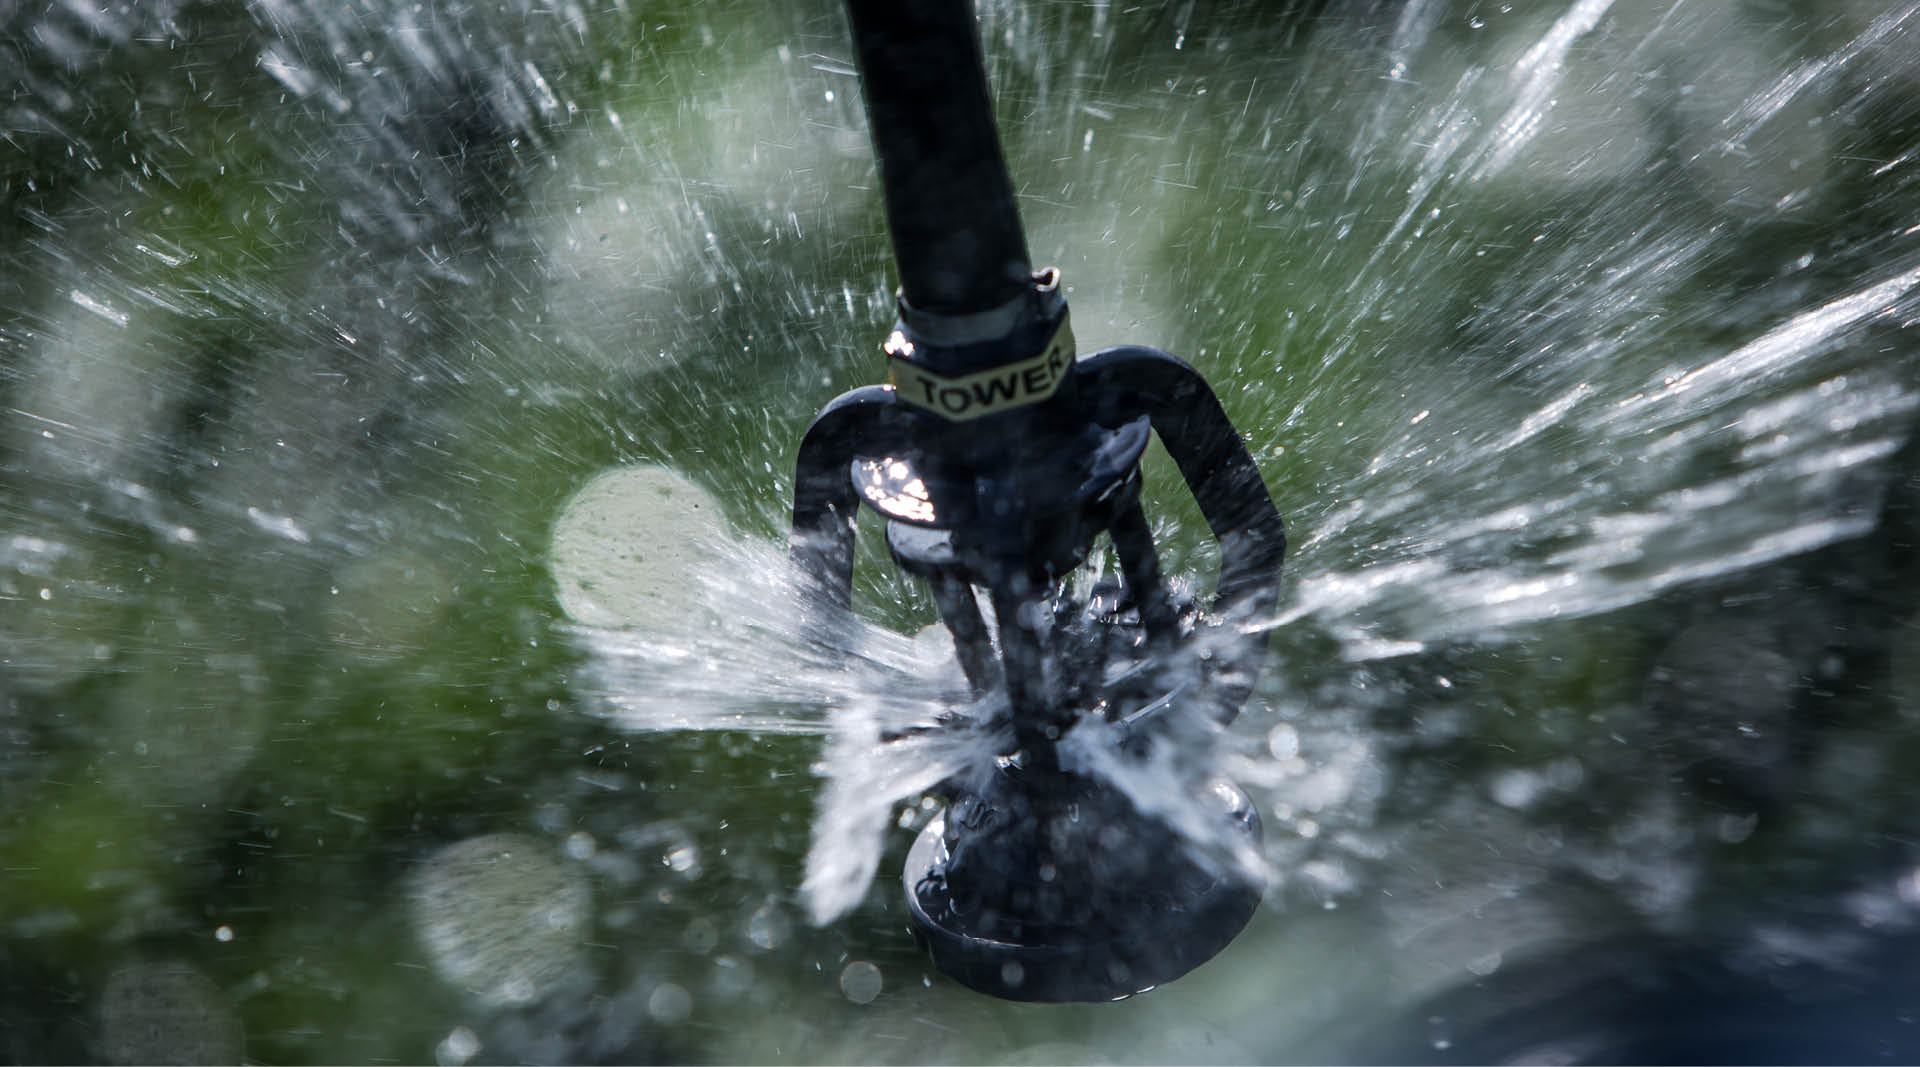 sprinkler-close-up